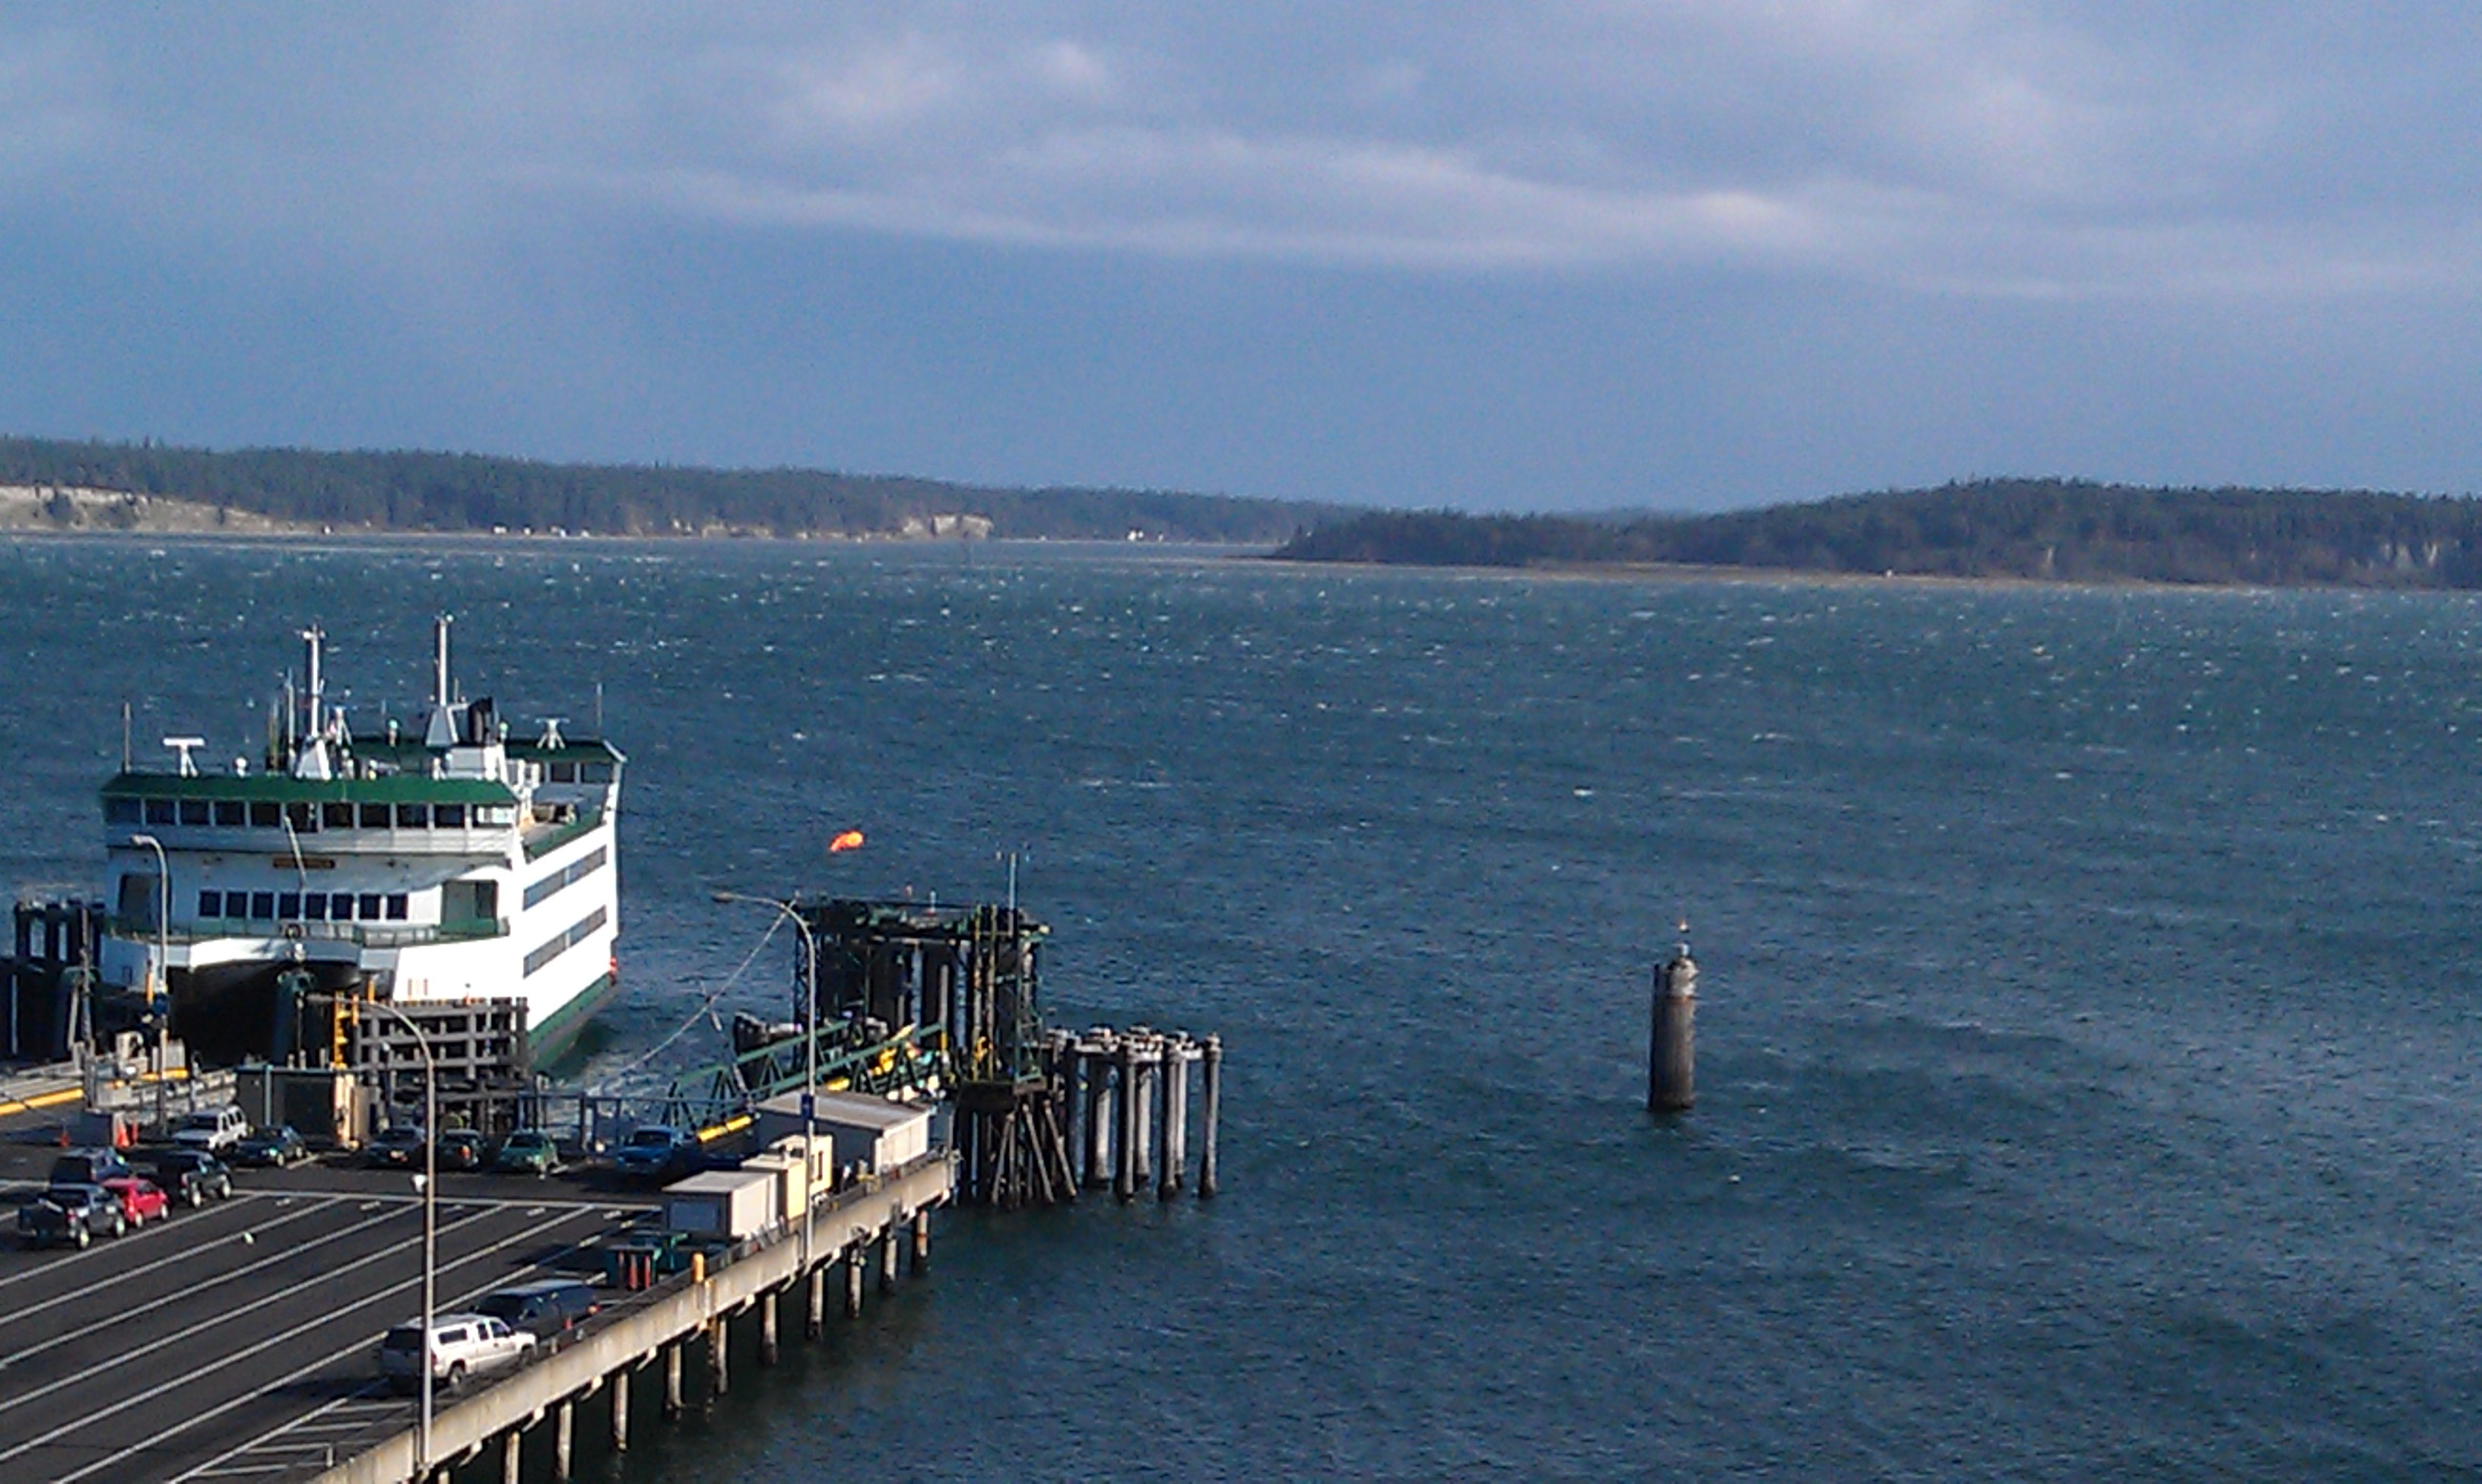 Spring weather over Port Townsend Bay and the ferry dock